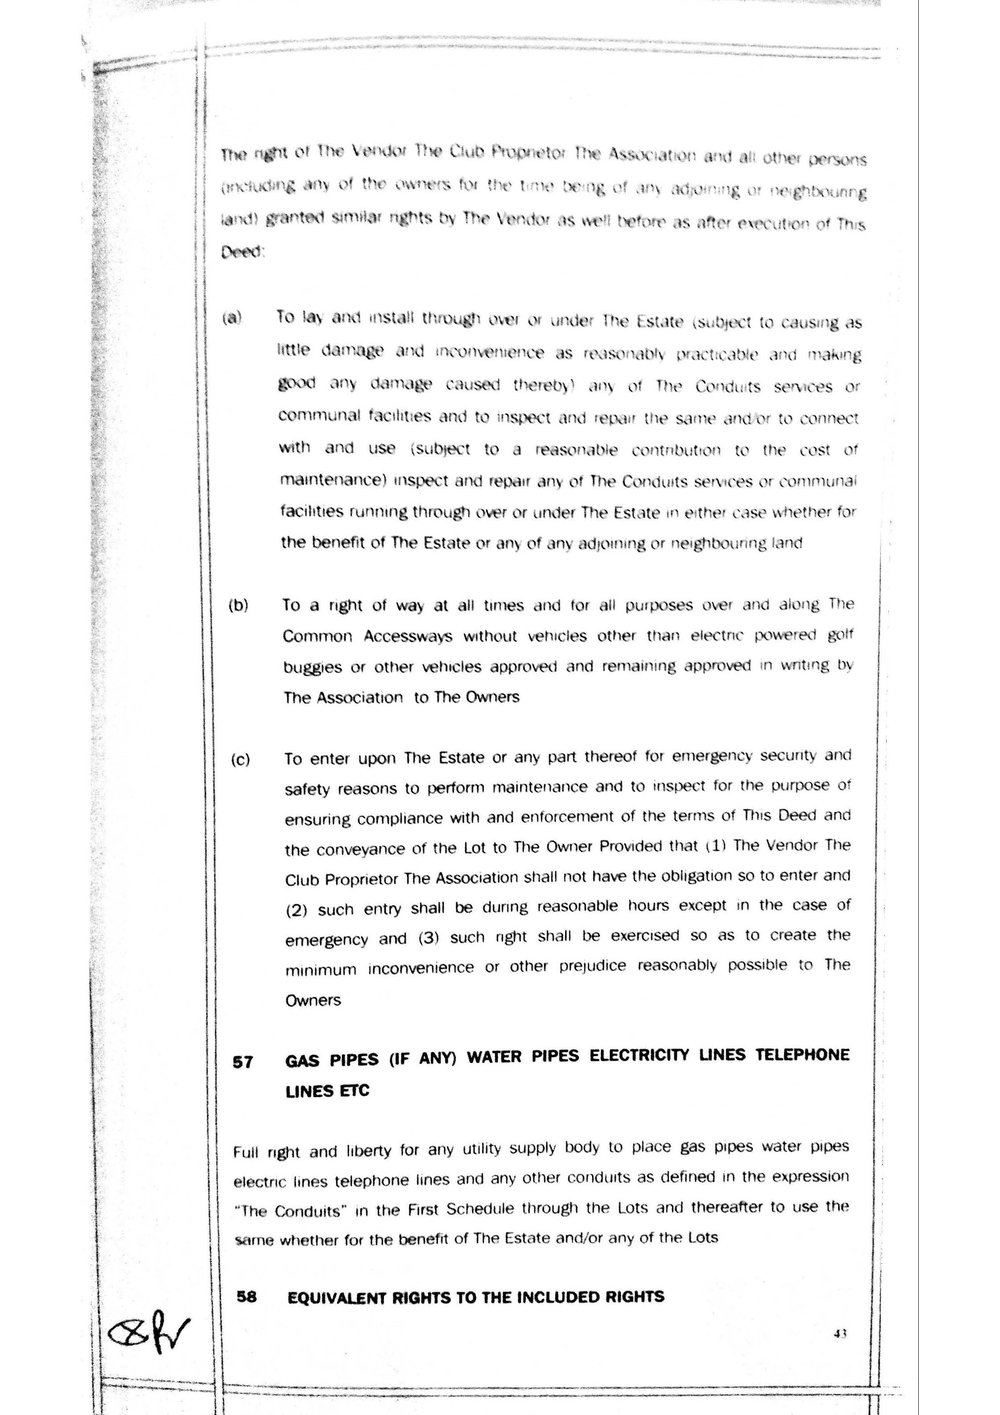 MC Ind p39 onwards_Page_05.jpg